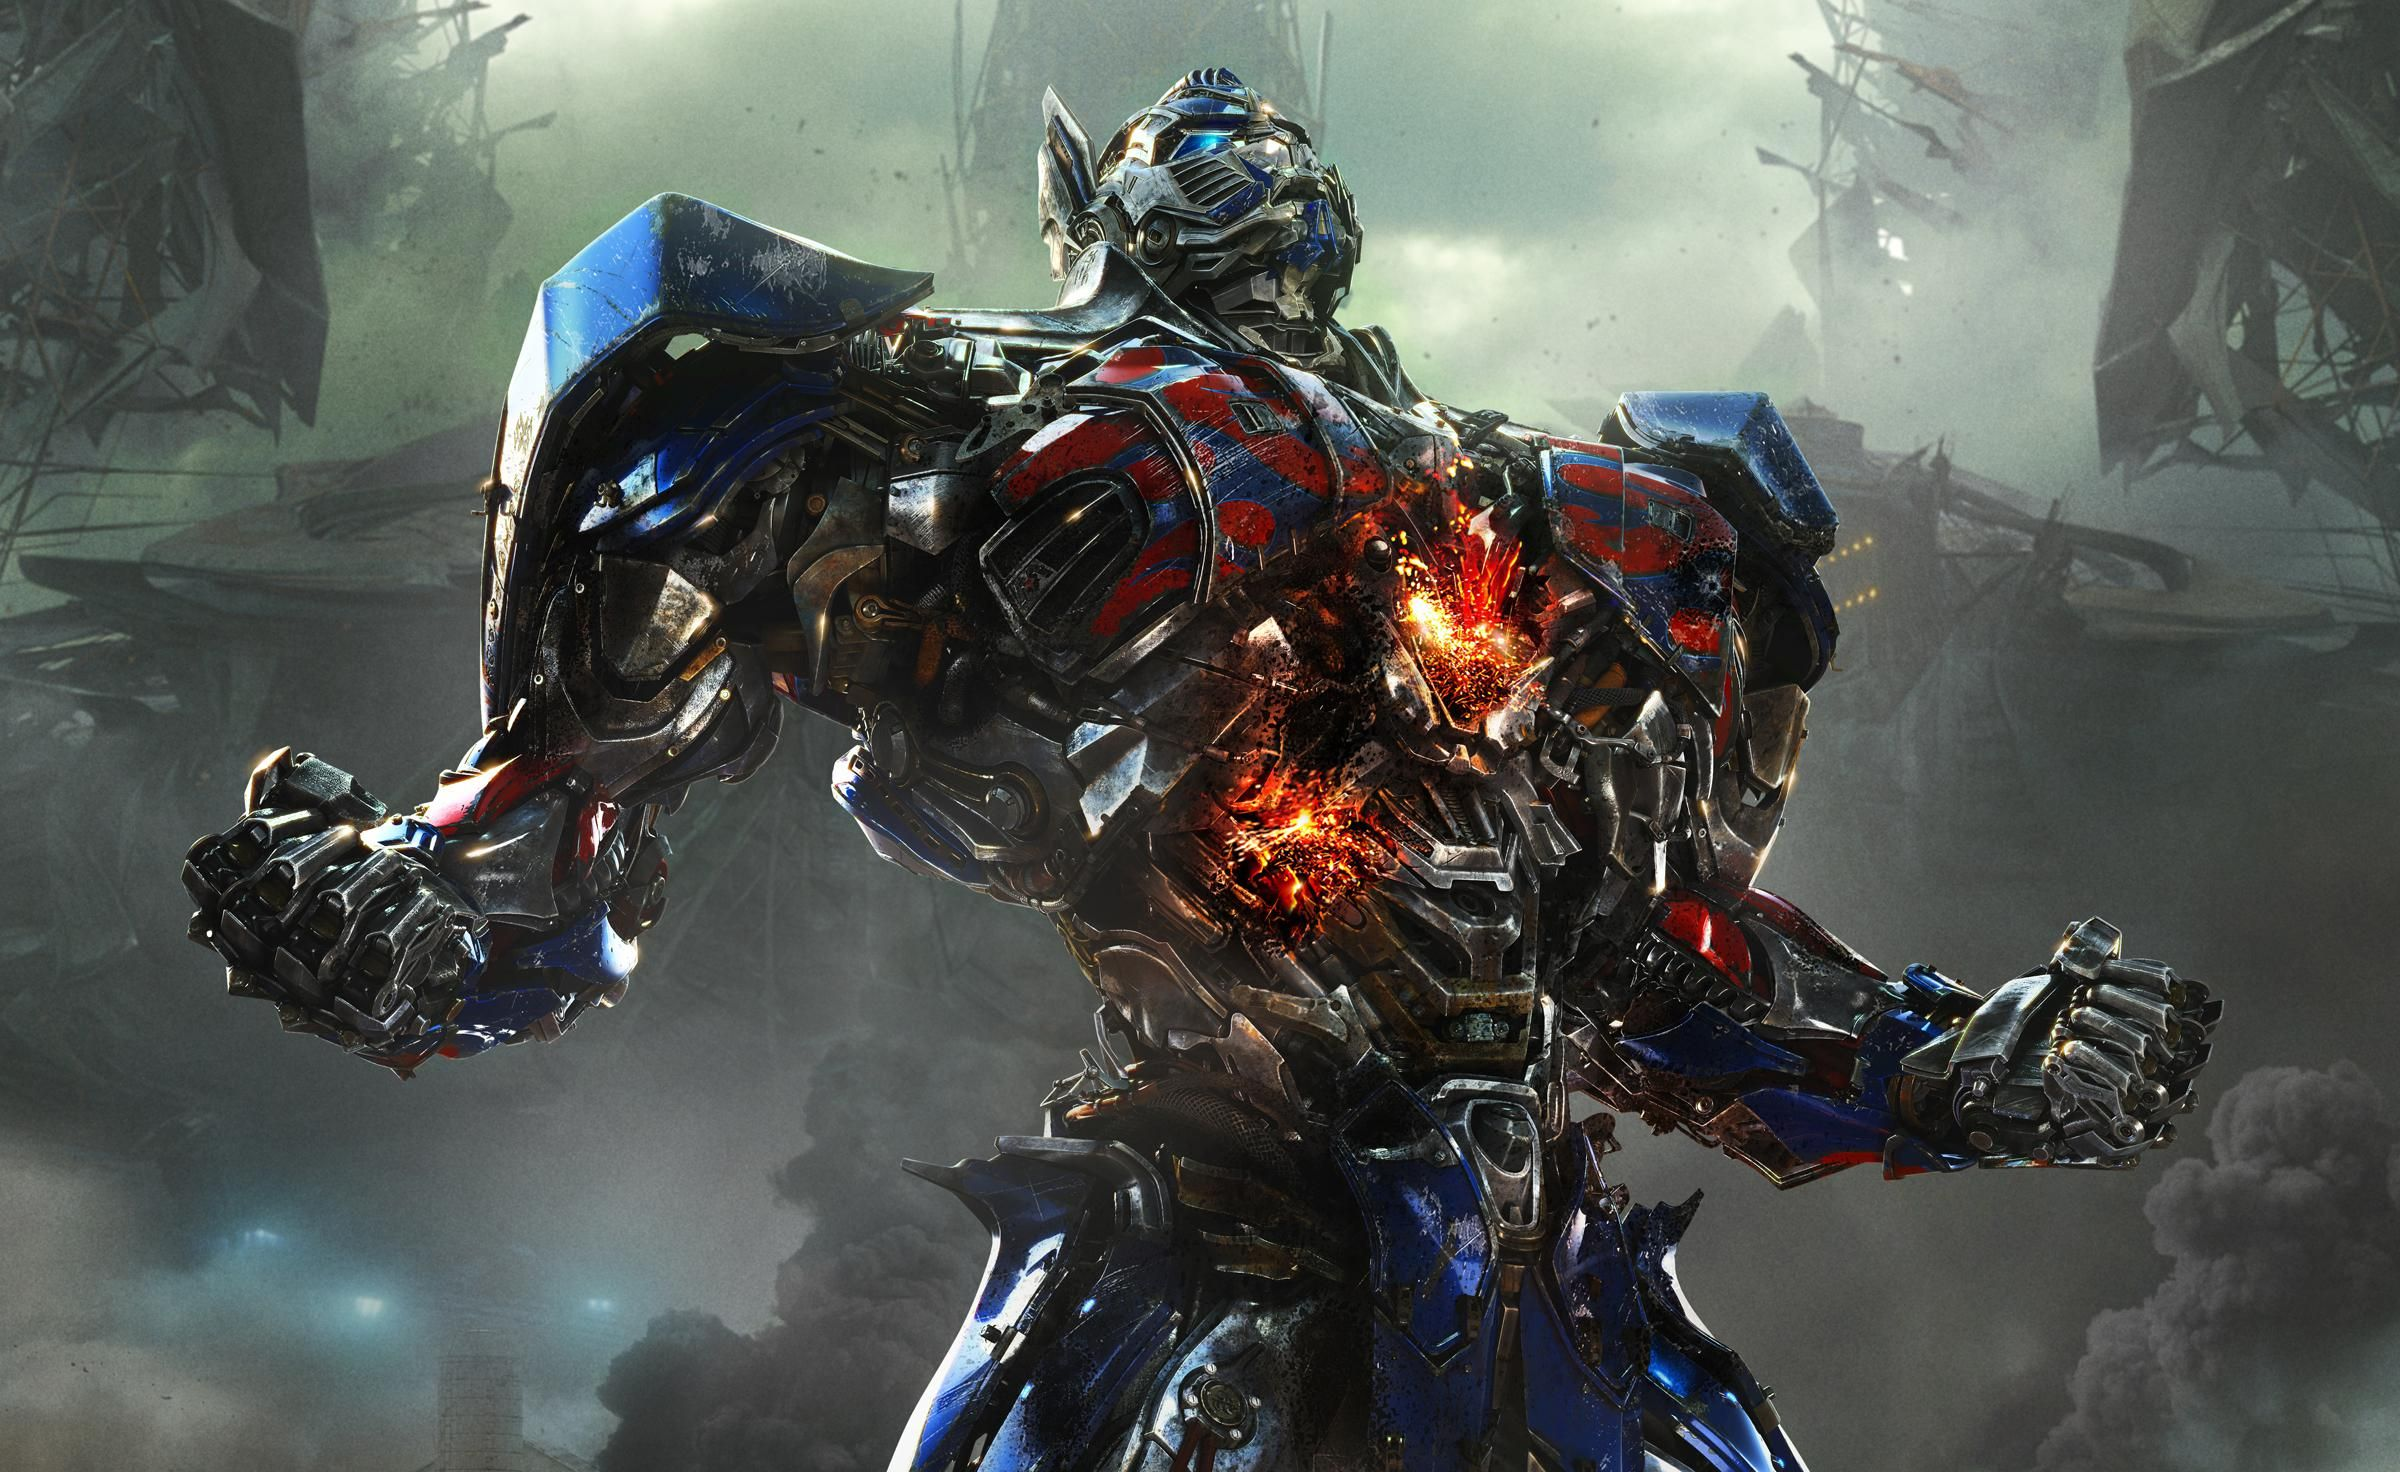 optimus prime hd wallpapers backgrounds wallpaper | hd wallpapers